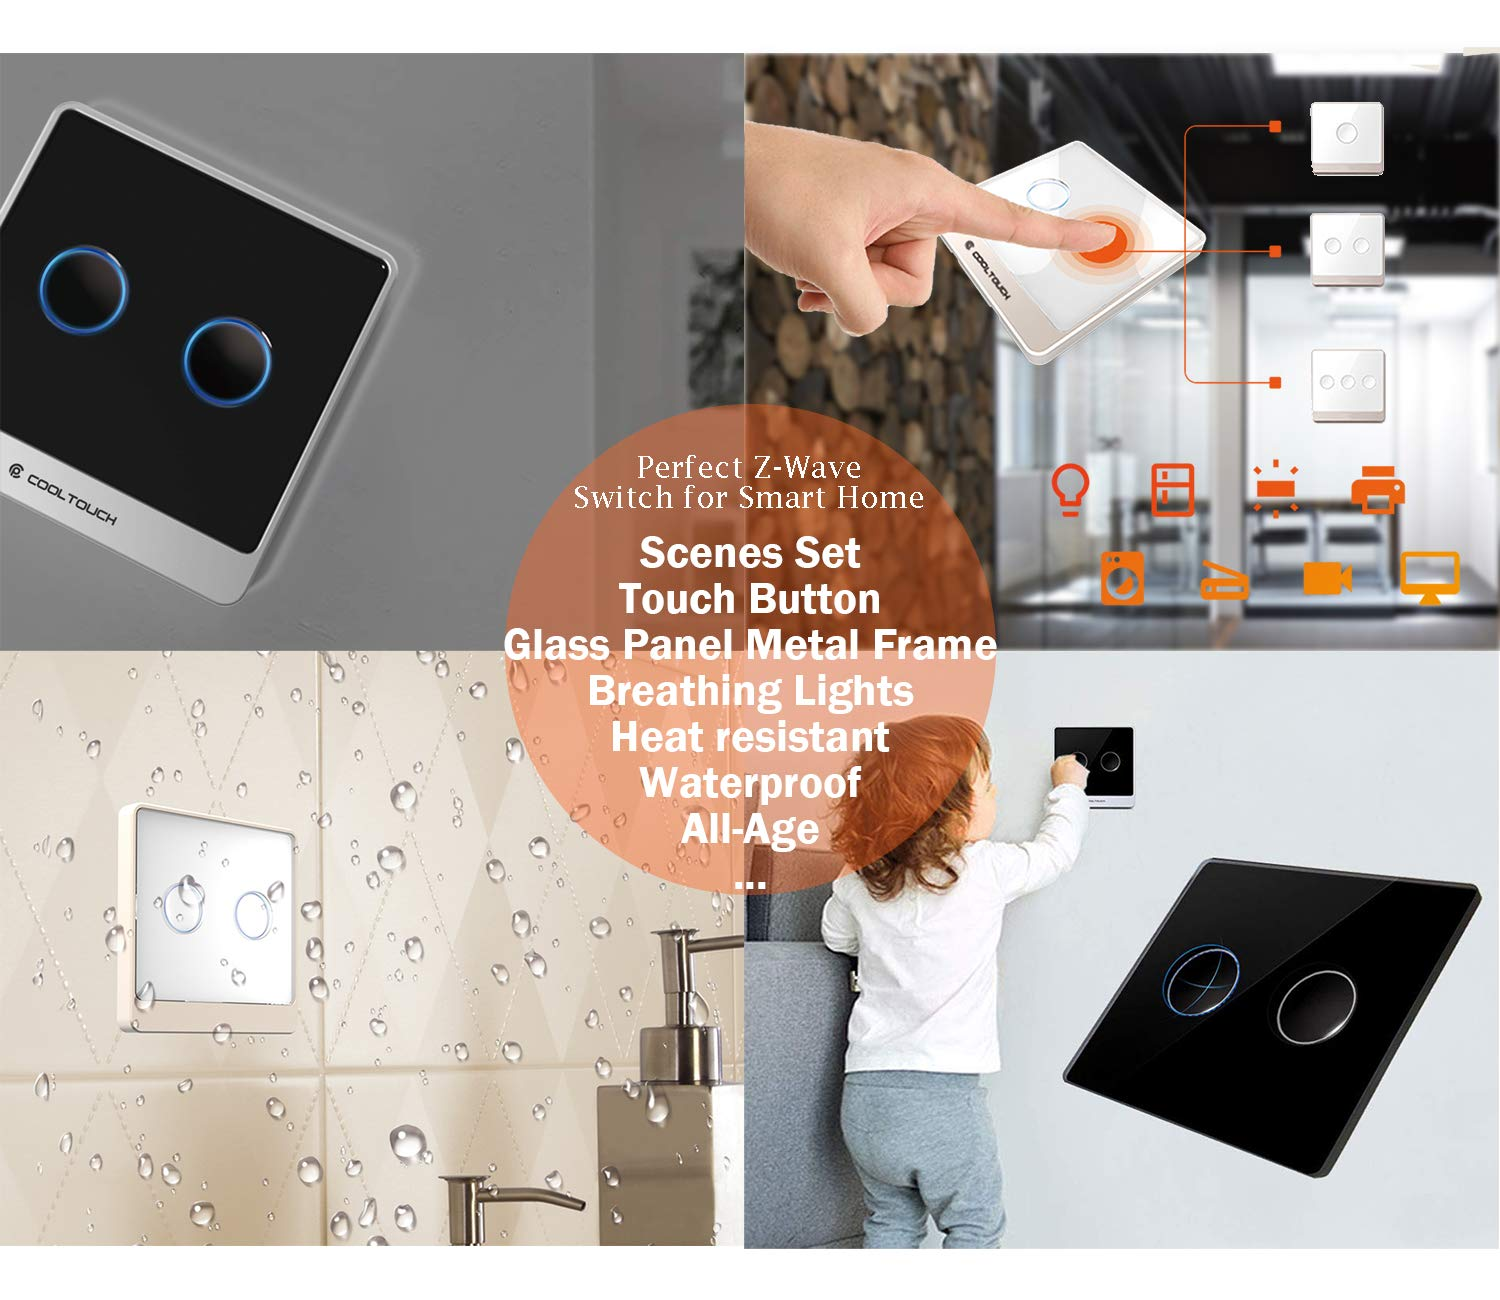 CoolTouch Smart Switch, Z-Wave zwave protocal, estable, buen ...